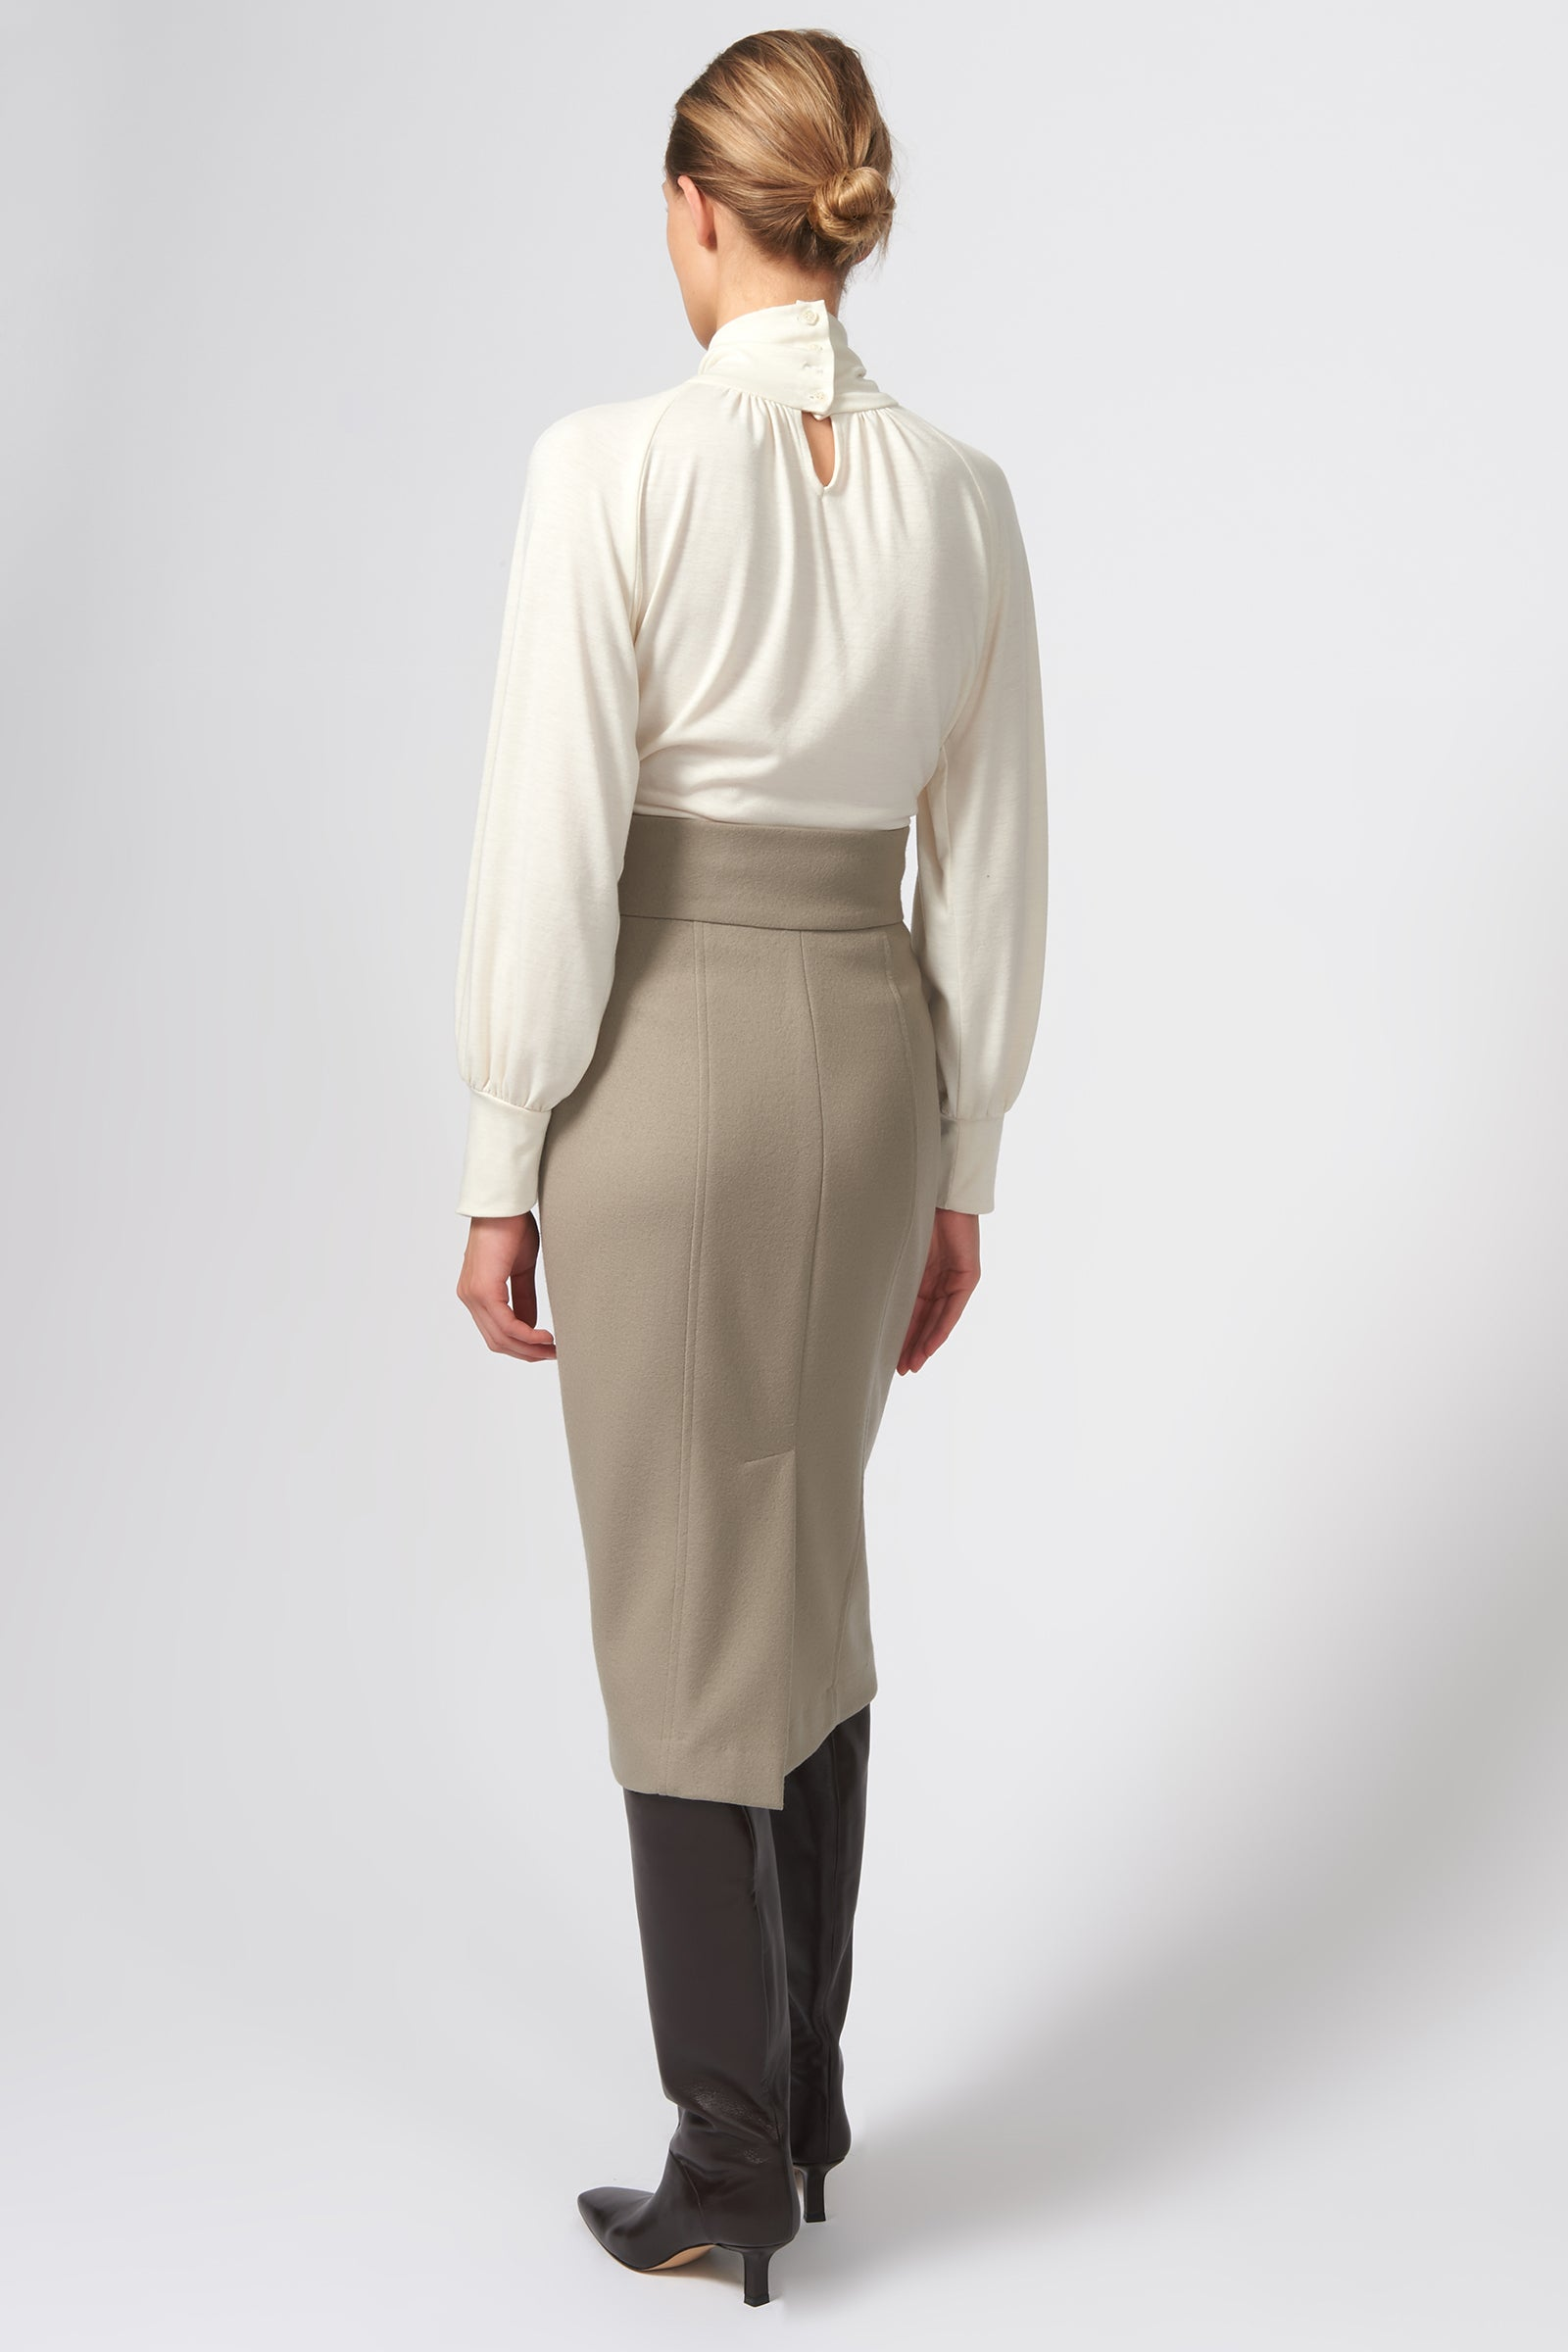 Kal Rieman High Waisted Pencil Skirt in Taupe on Model Full Front View